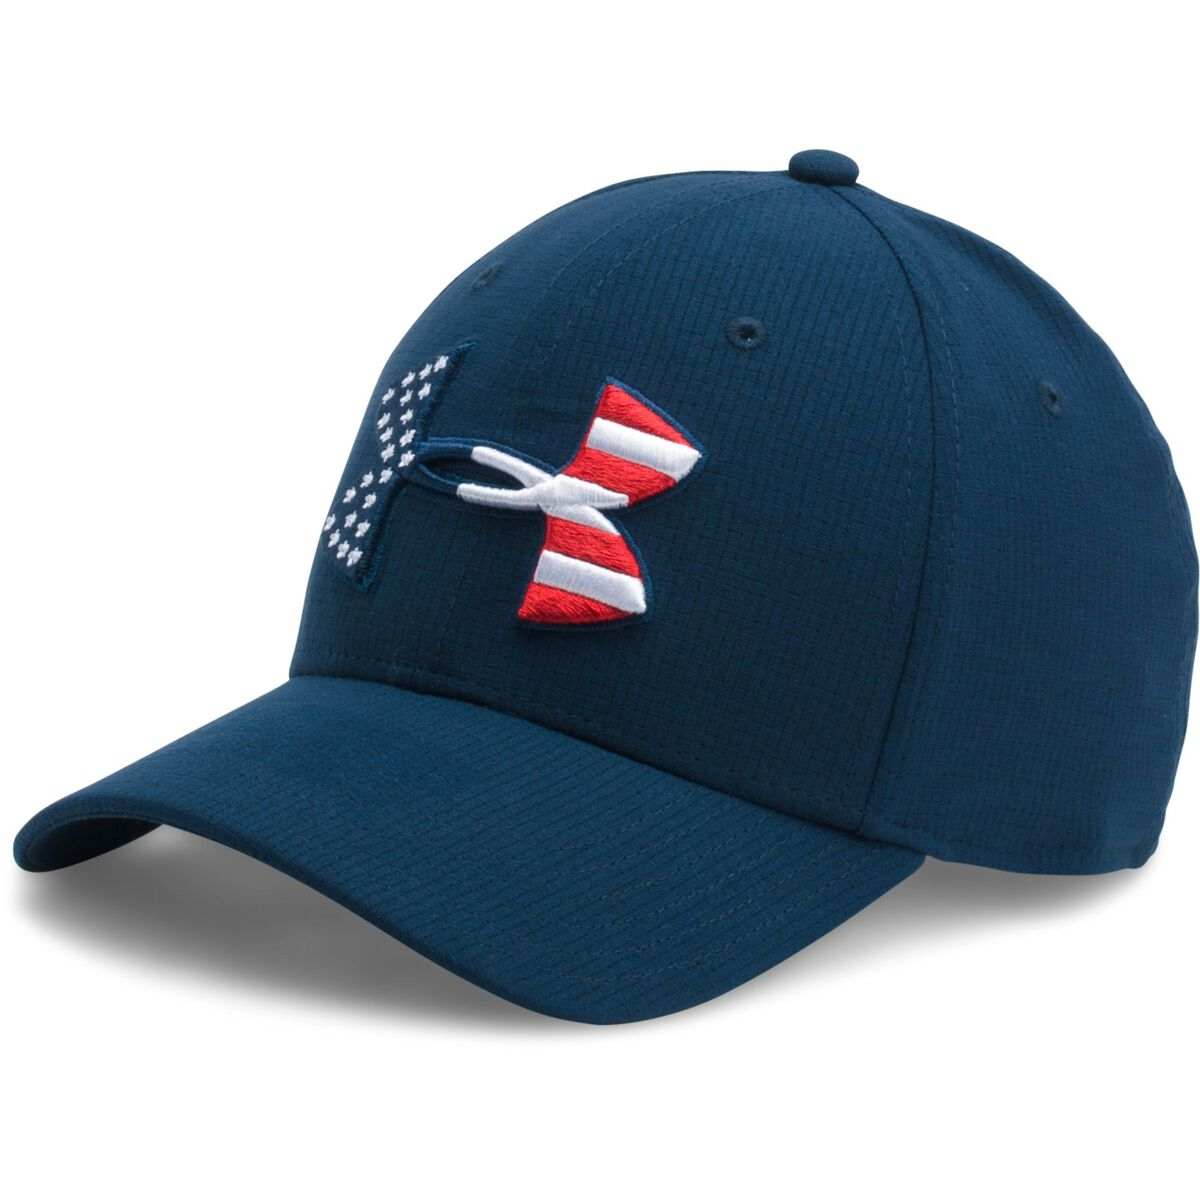 Images. Under Armour Big Flag Logo 2.0 Hat 5a67a594810